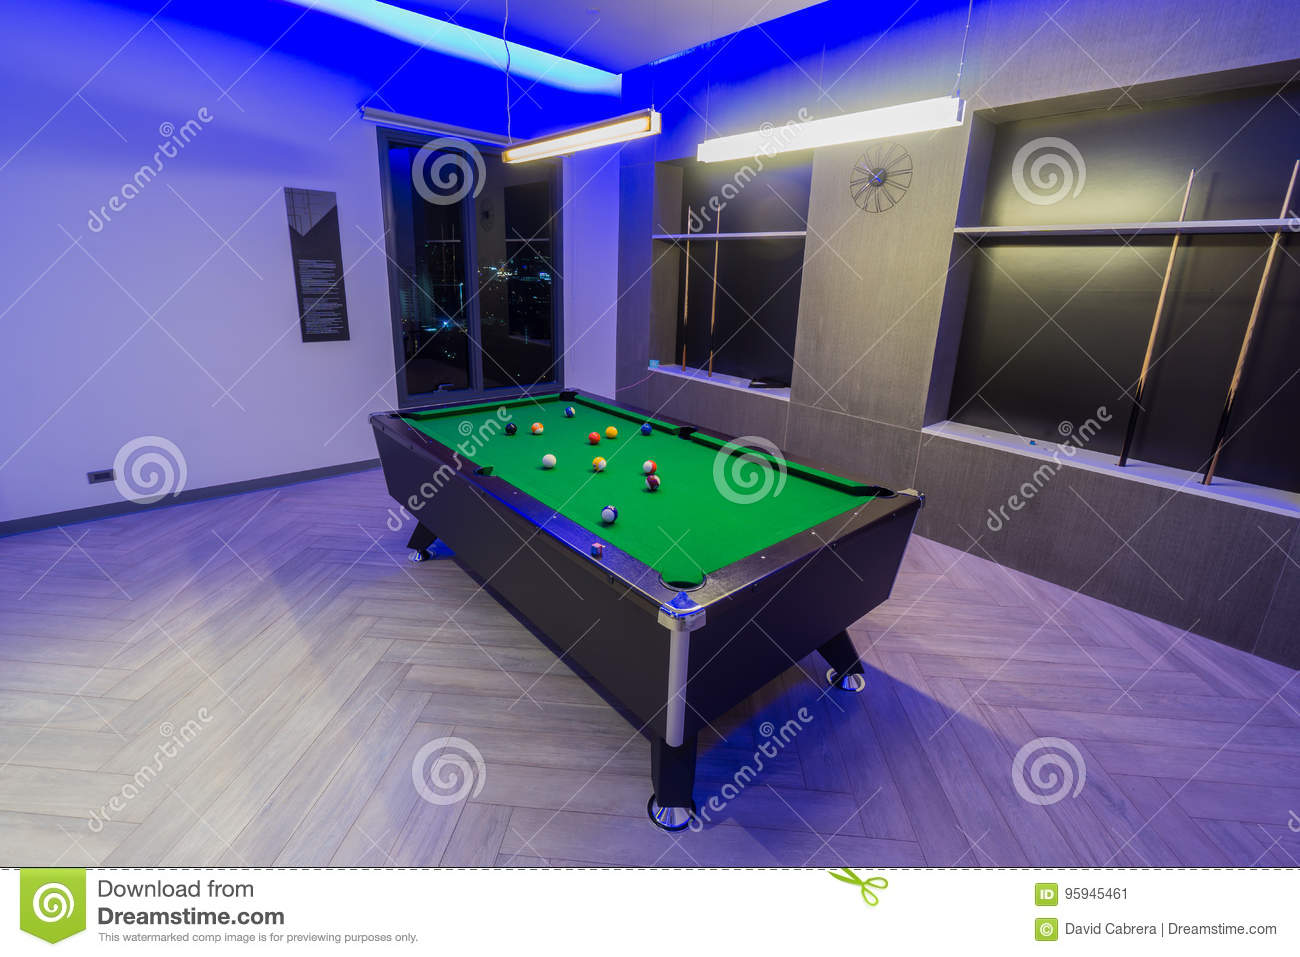 Snooker Pool Billiards room, green table with complete set of balls in a modern room with neon lights